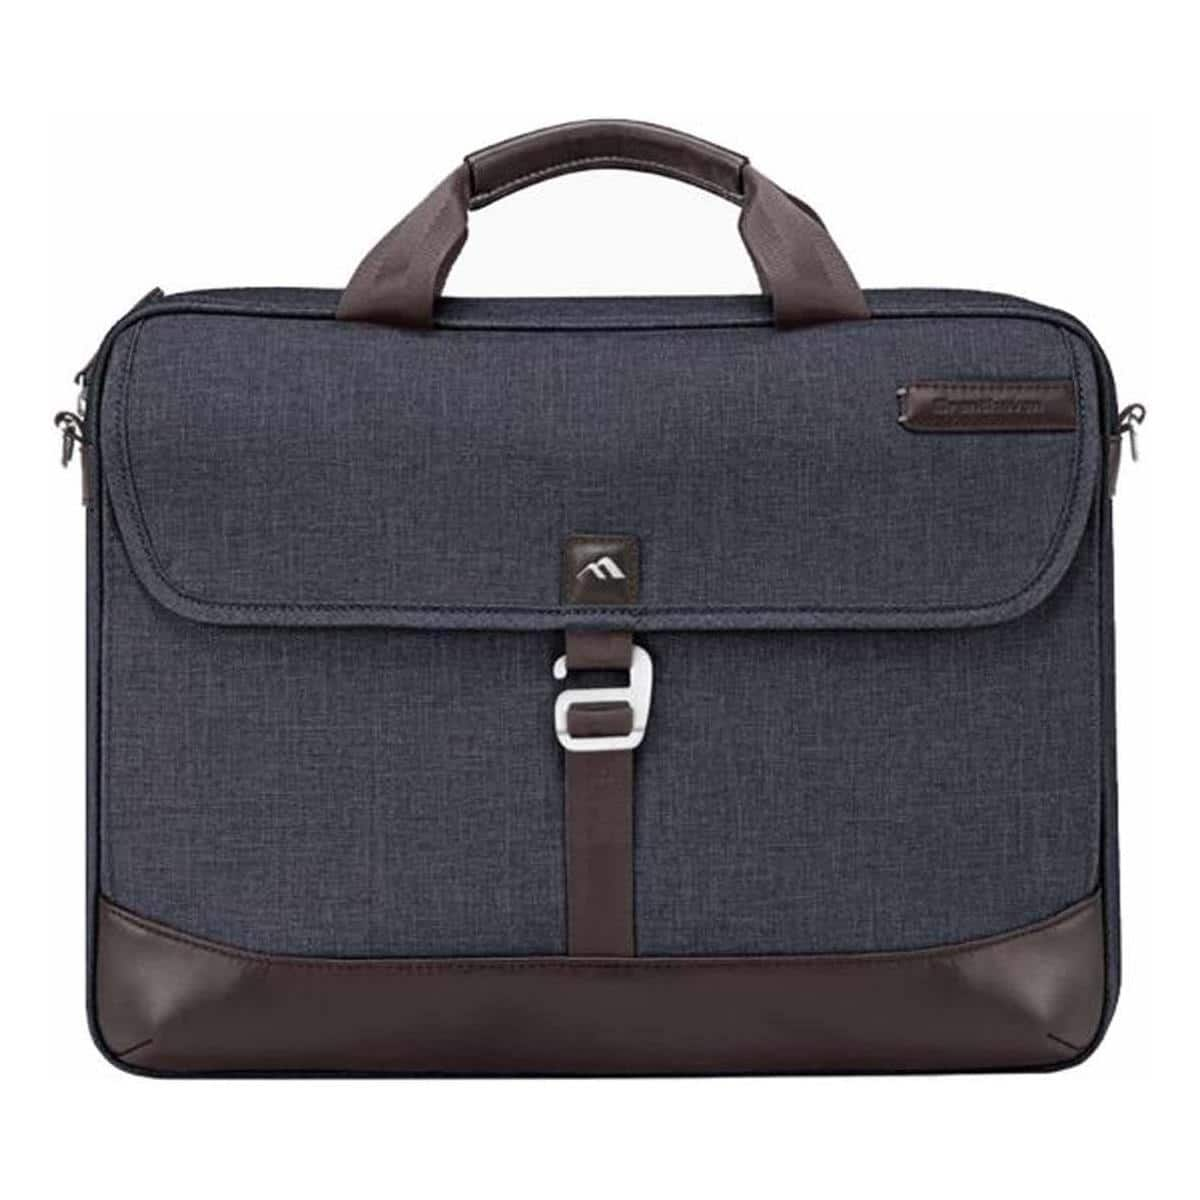 Brenthaven Collins Slim Briefcase  $40 + Free Shipping